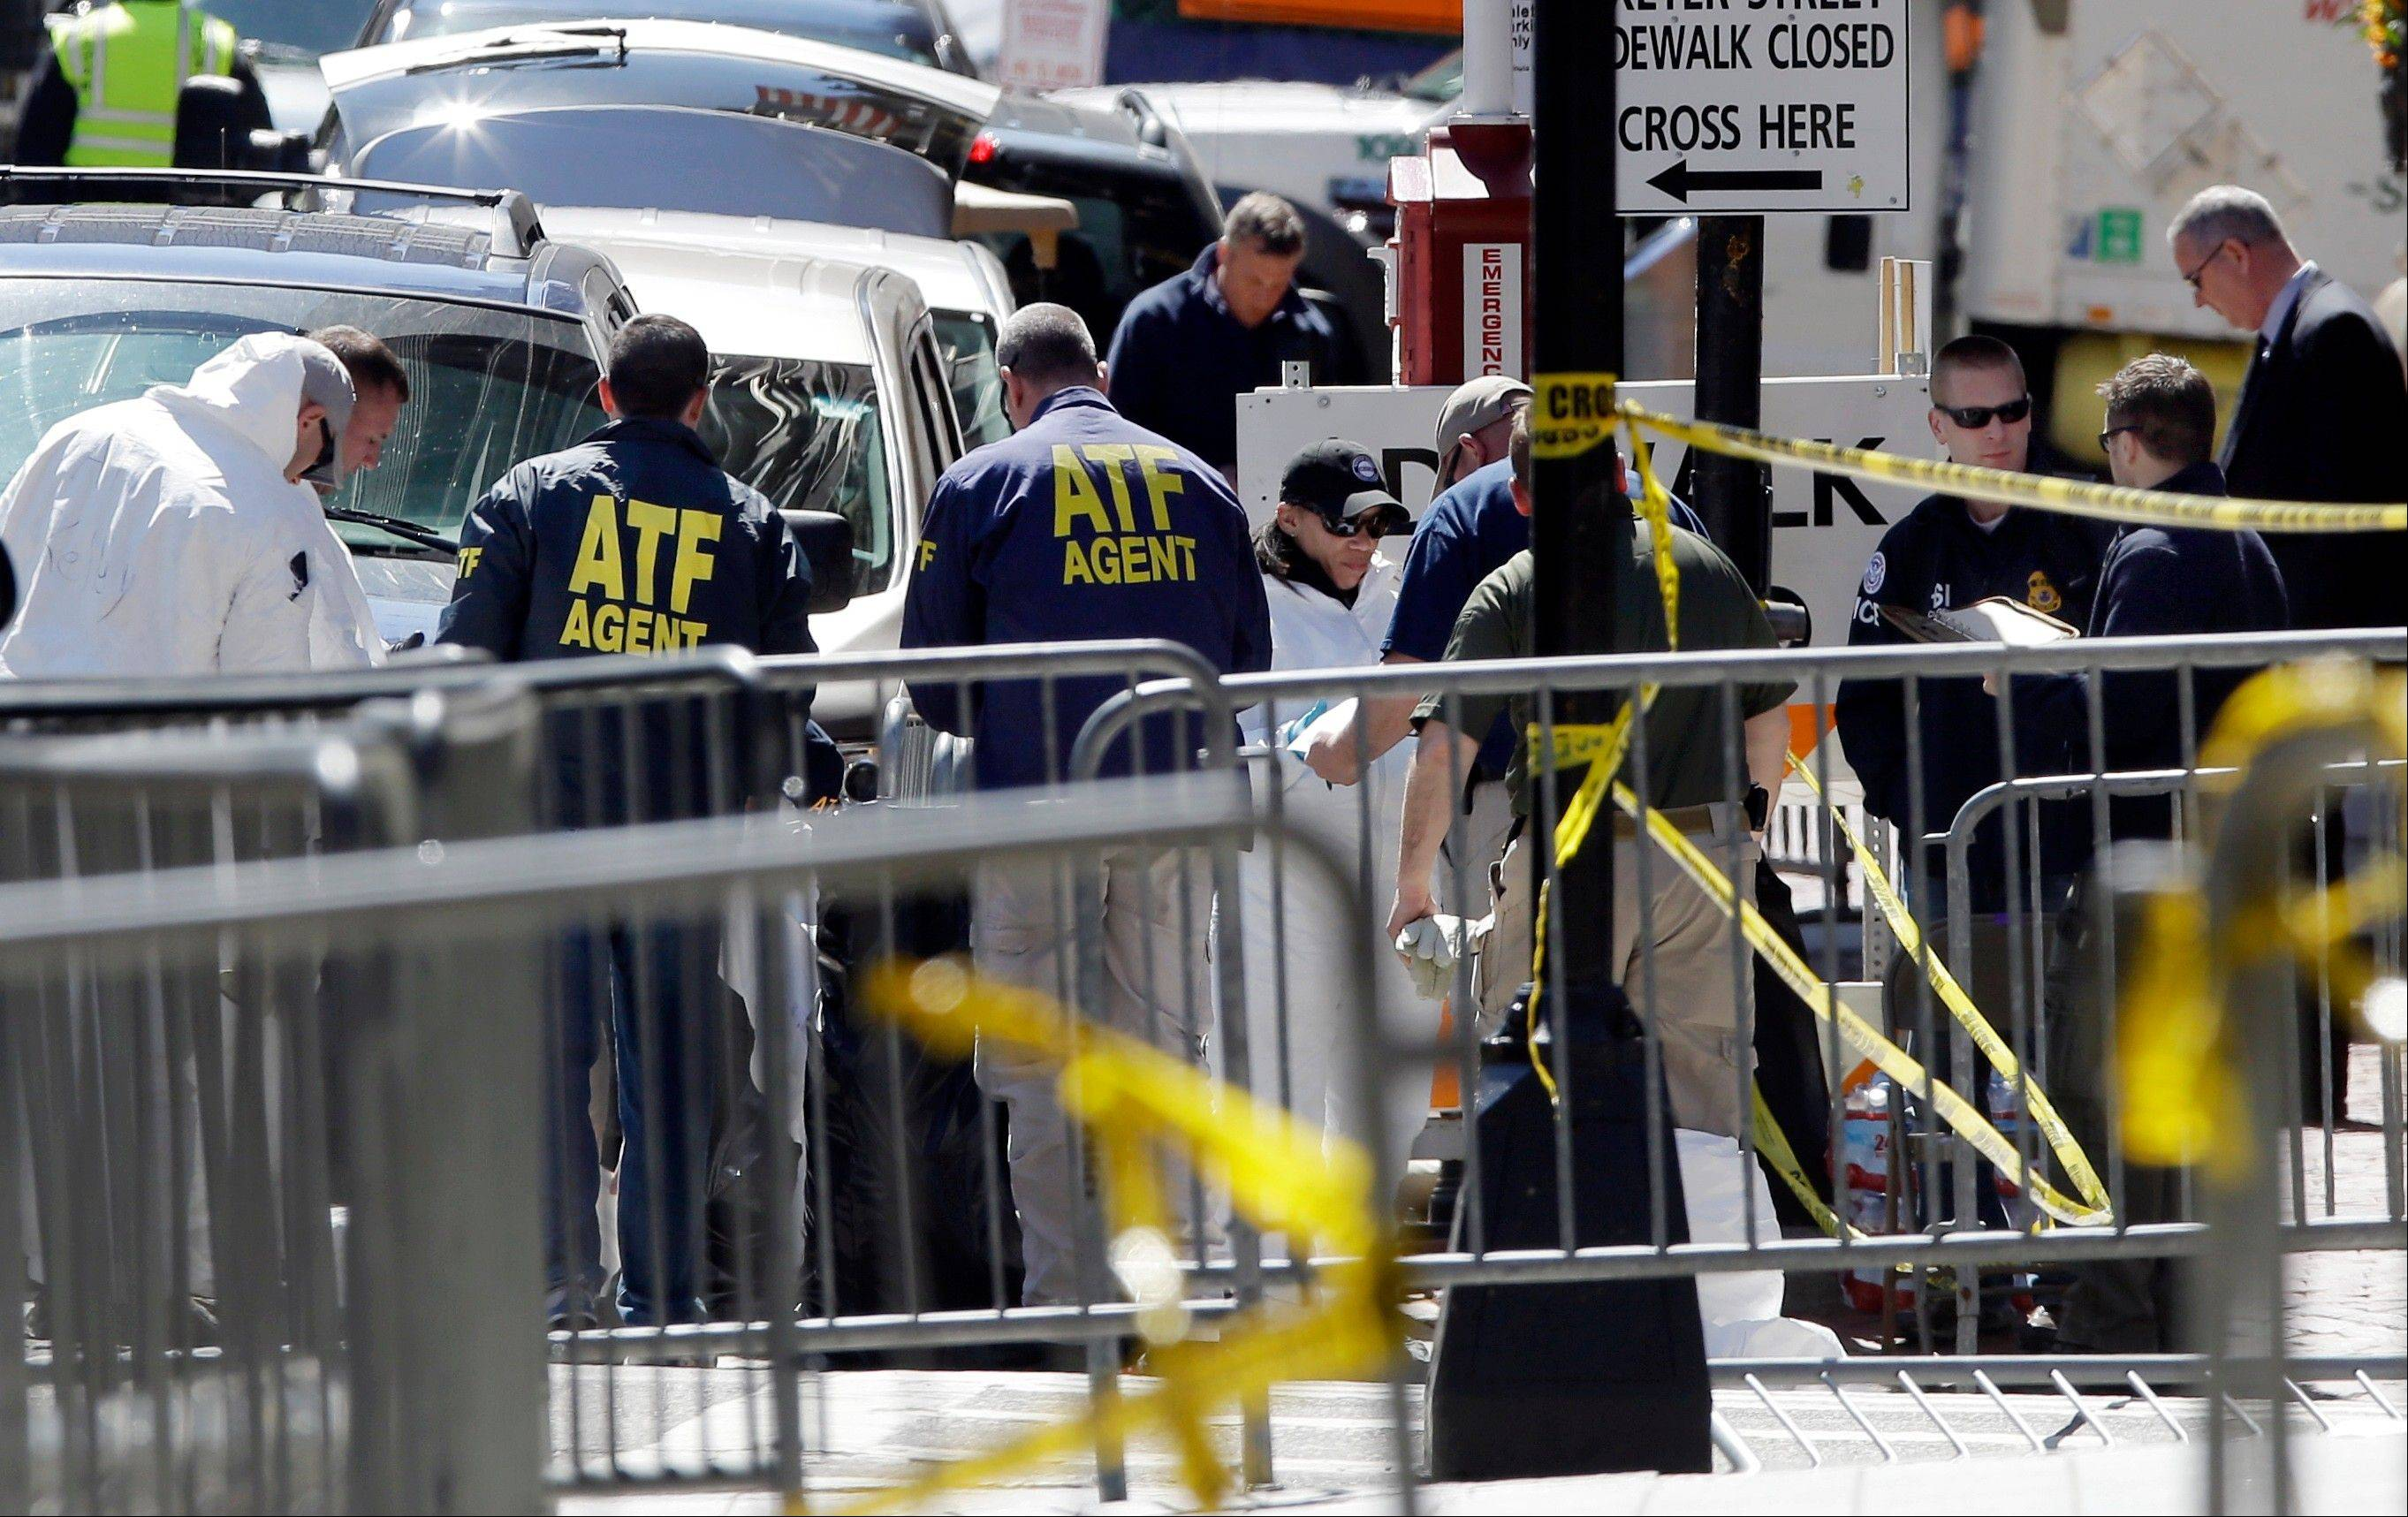 Feds hunt bomb suspects; Obama offers reassurance